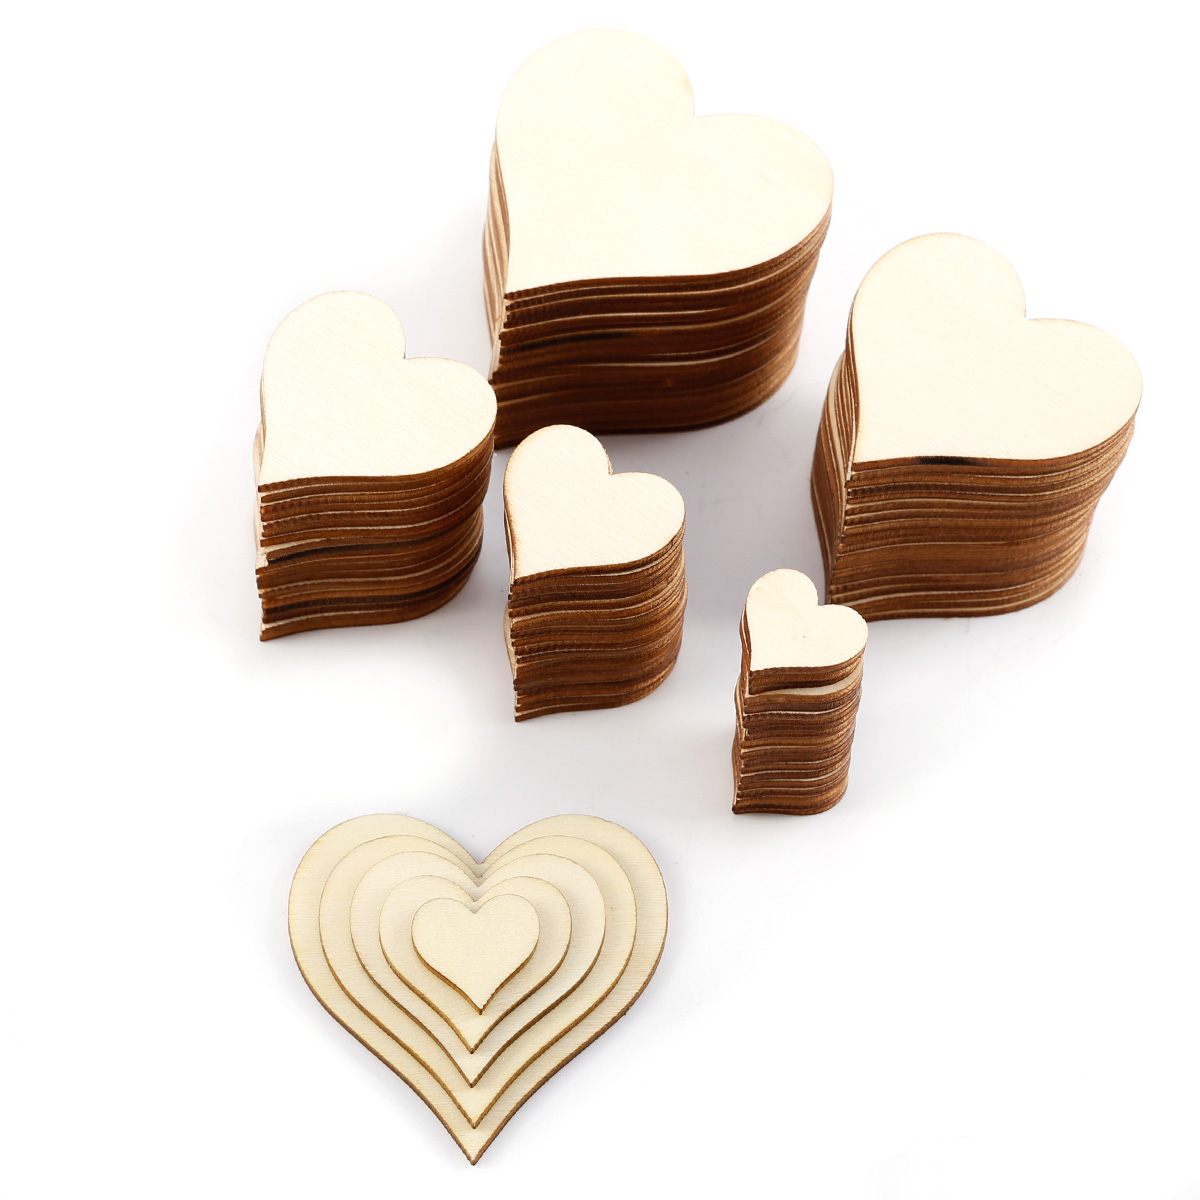 Solid wooden love heart shapes craft supplies shapes large for Wooden hearts for crafts